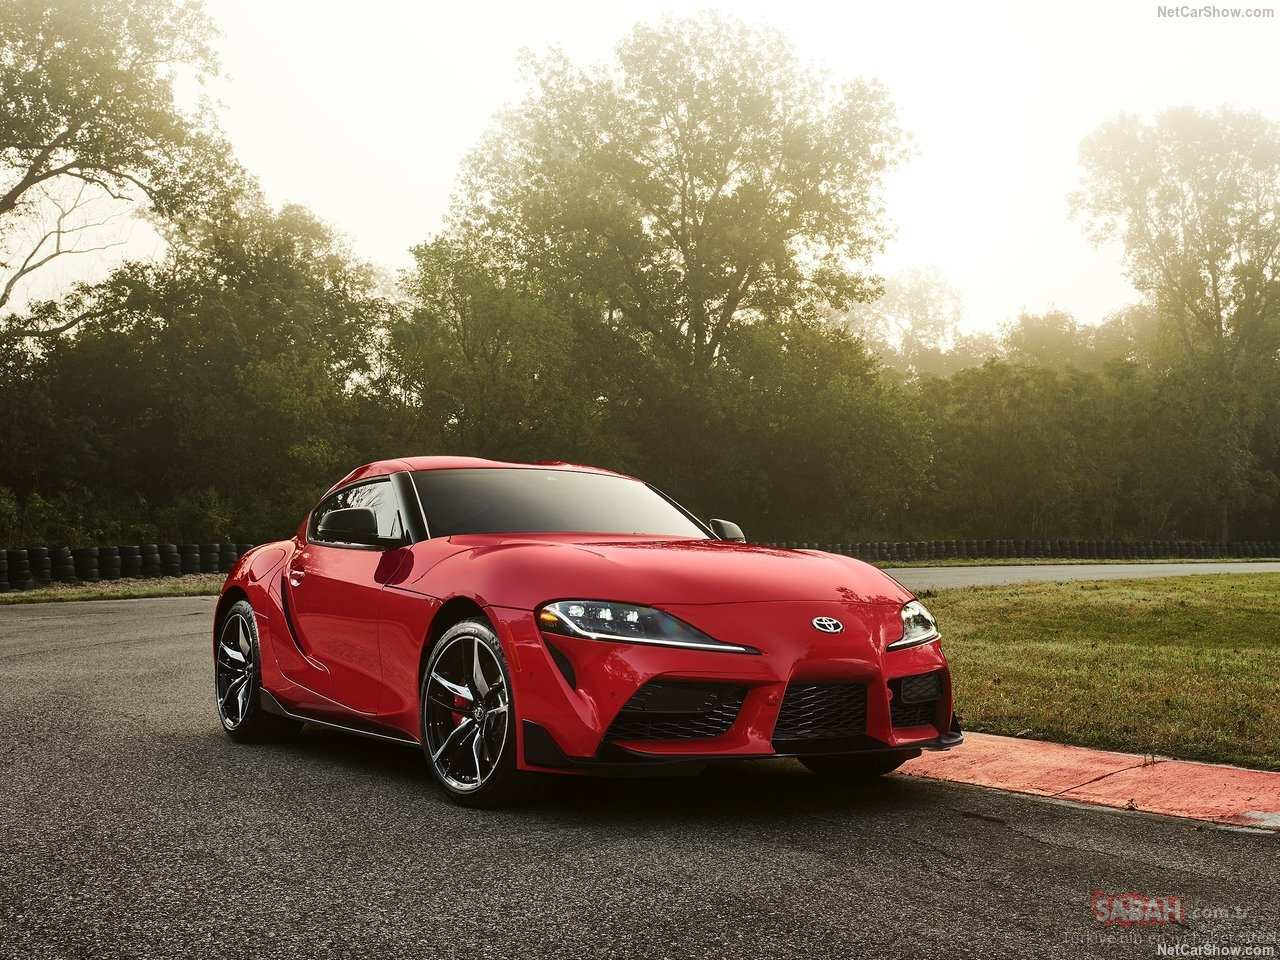 15 Gallery of Toyota Supra 2019 Images for Toyota Supra 2019